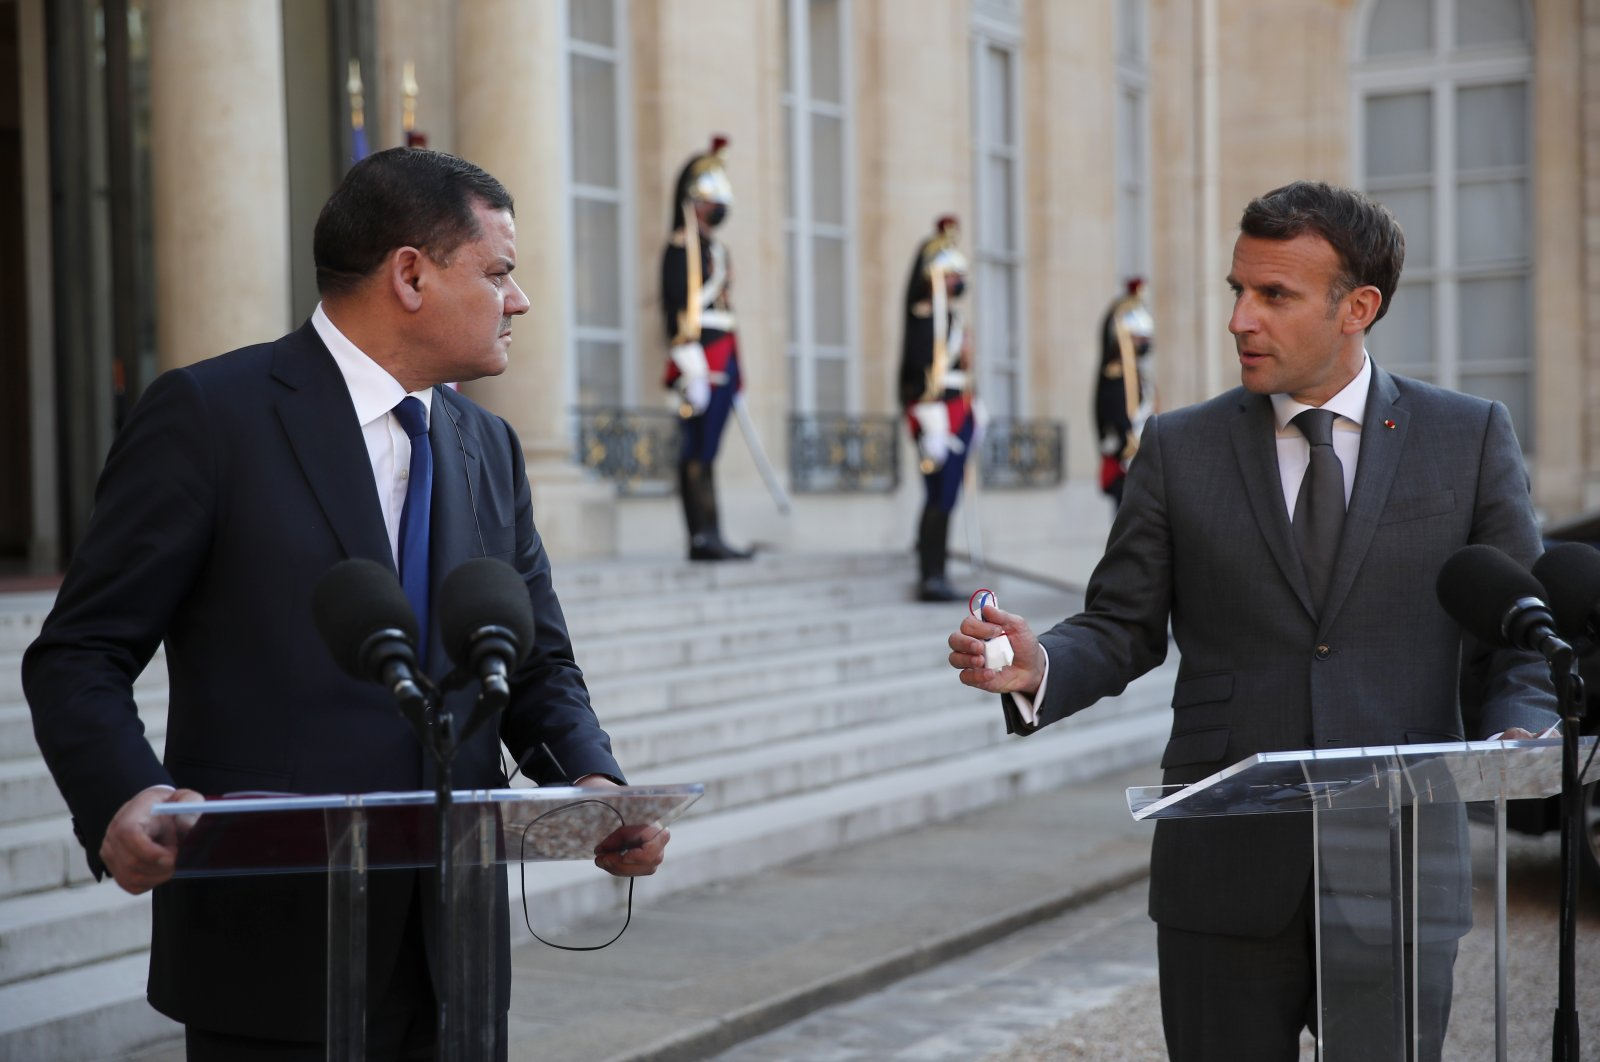 French President Emmanuel Macron (R) and Libyan Prime Minister  Abdul Hamid Mohammed Dbeibah attend a press conference after their meeting at the Elysee Palace in Paris, France, June 1, 2021. (AP File Photo)